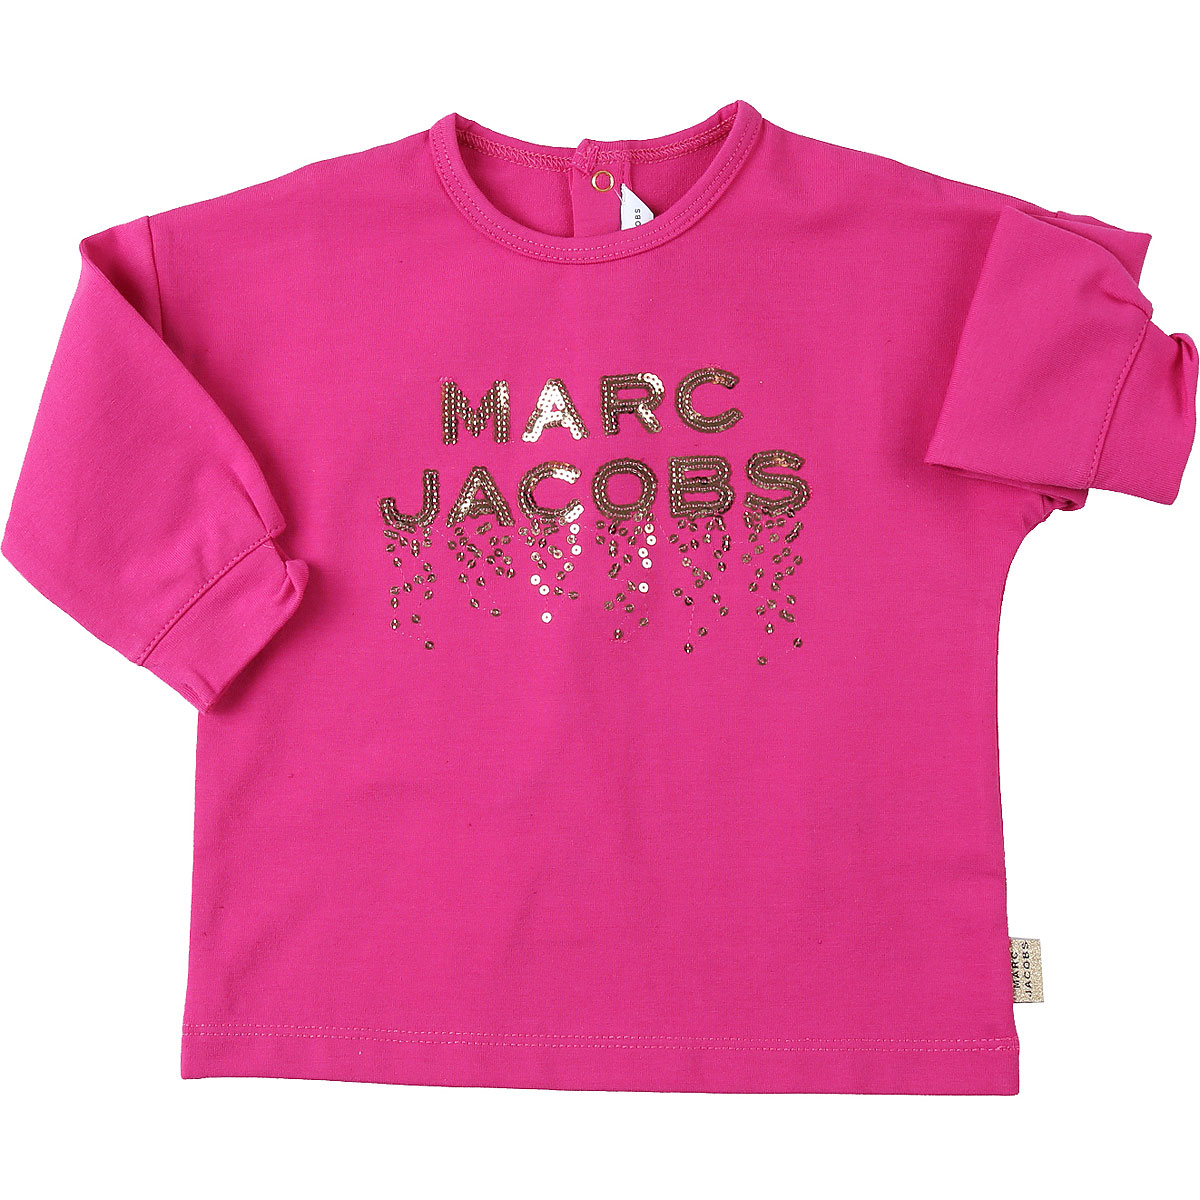 Marc Jacobs Baby T-Shirt for Girls On Sale, Fuchsia, polyester, 2019, 12M 18M 2Y 6M 9M